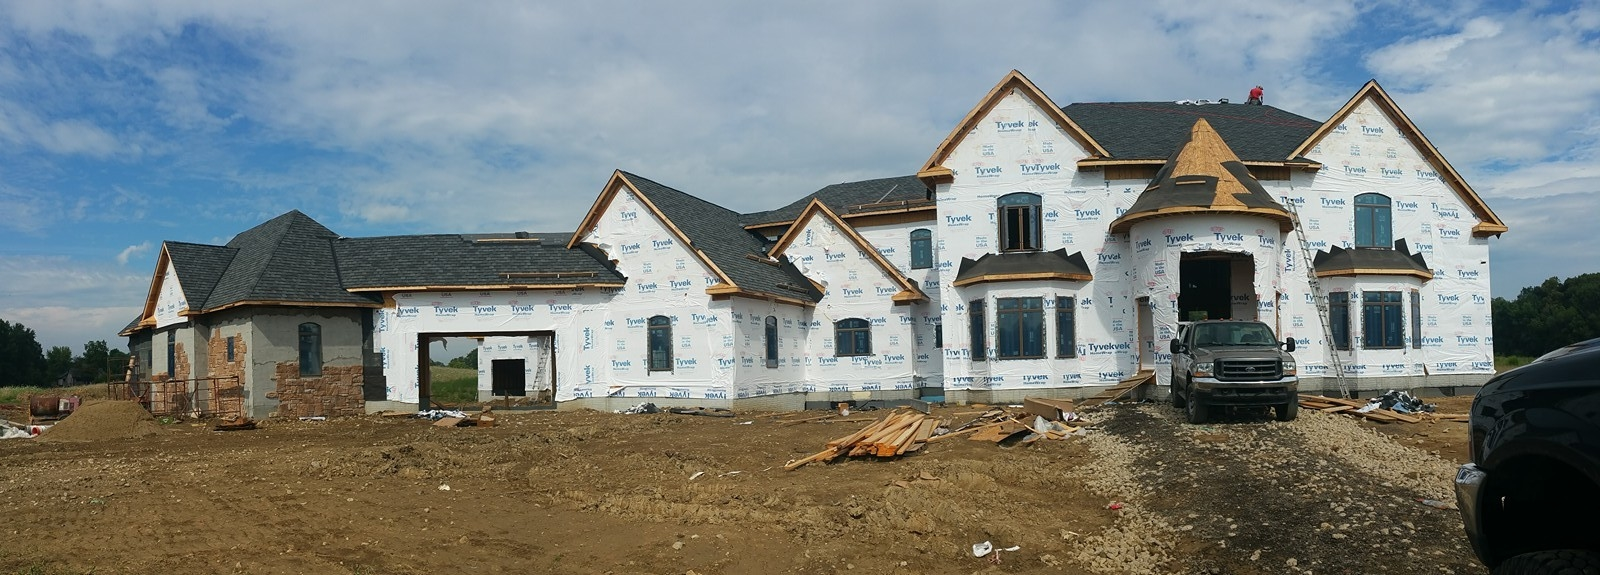 H & M Roofing And Exteriors LLC image 4